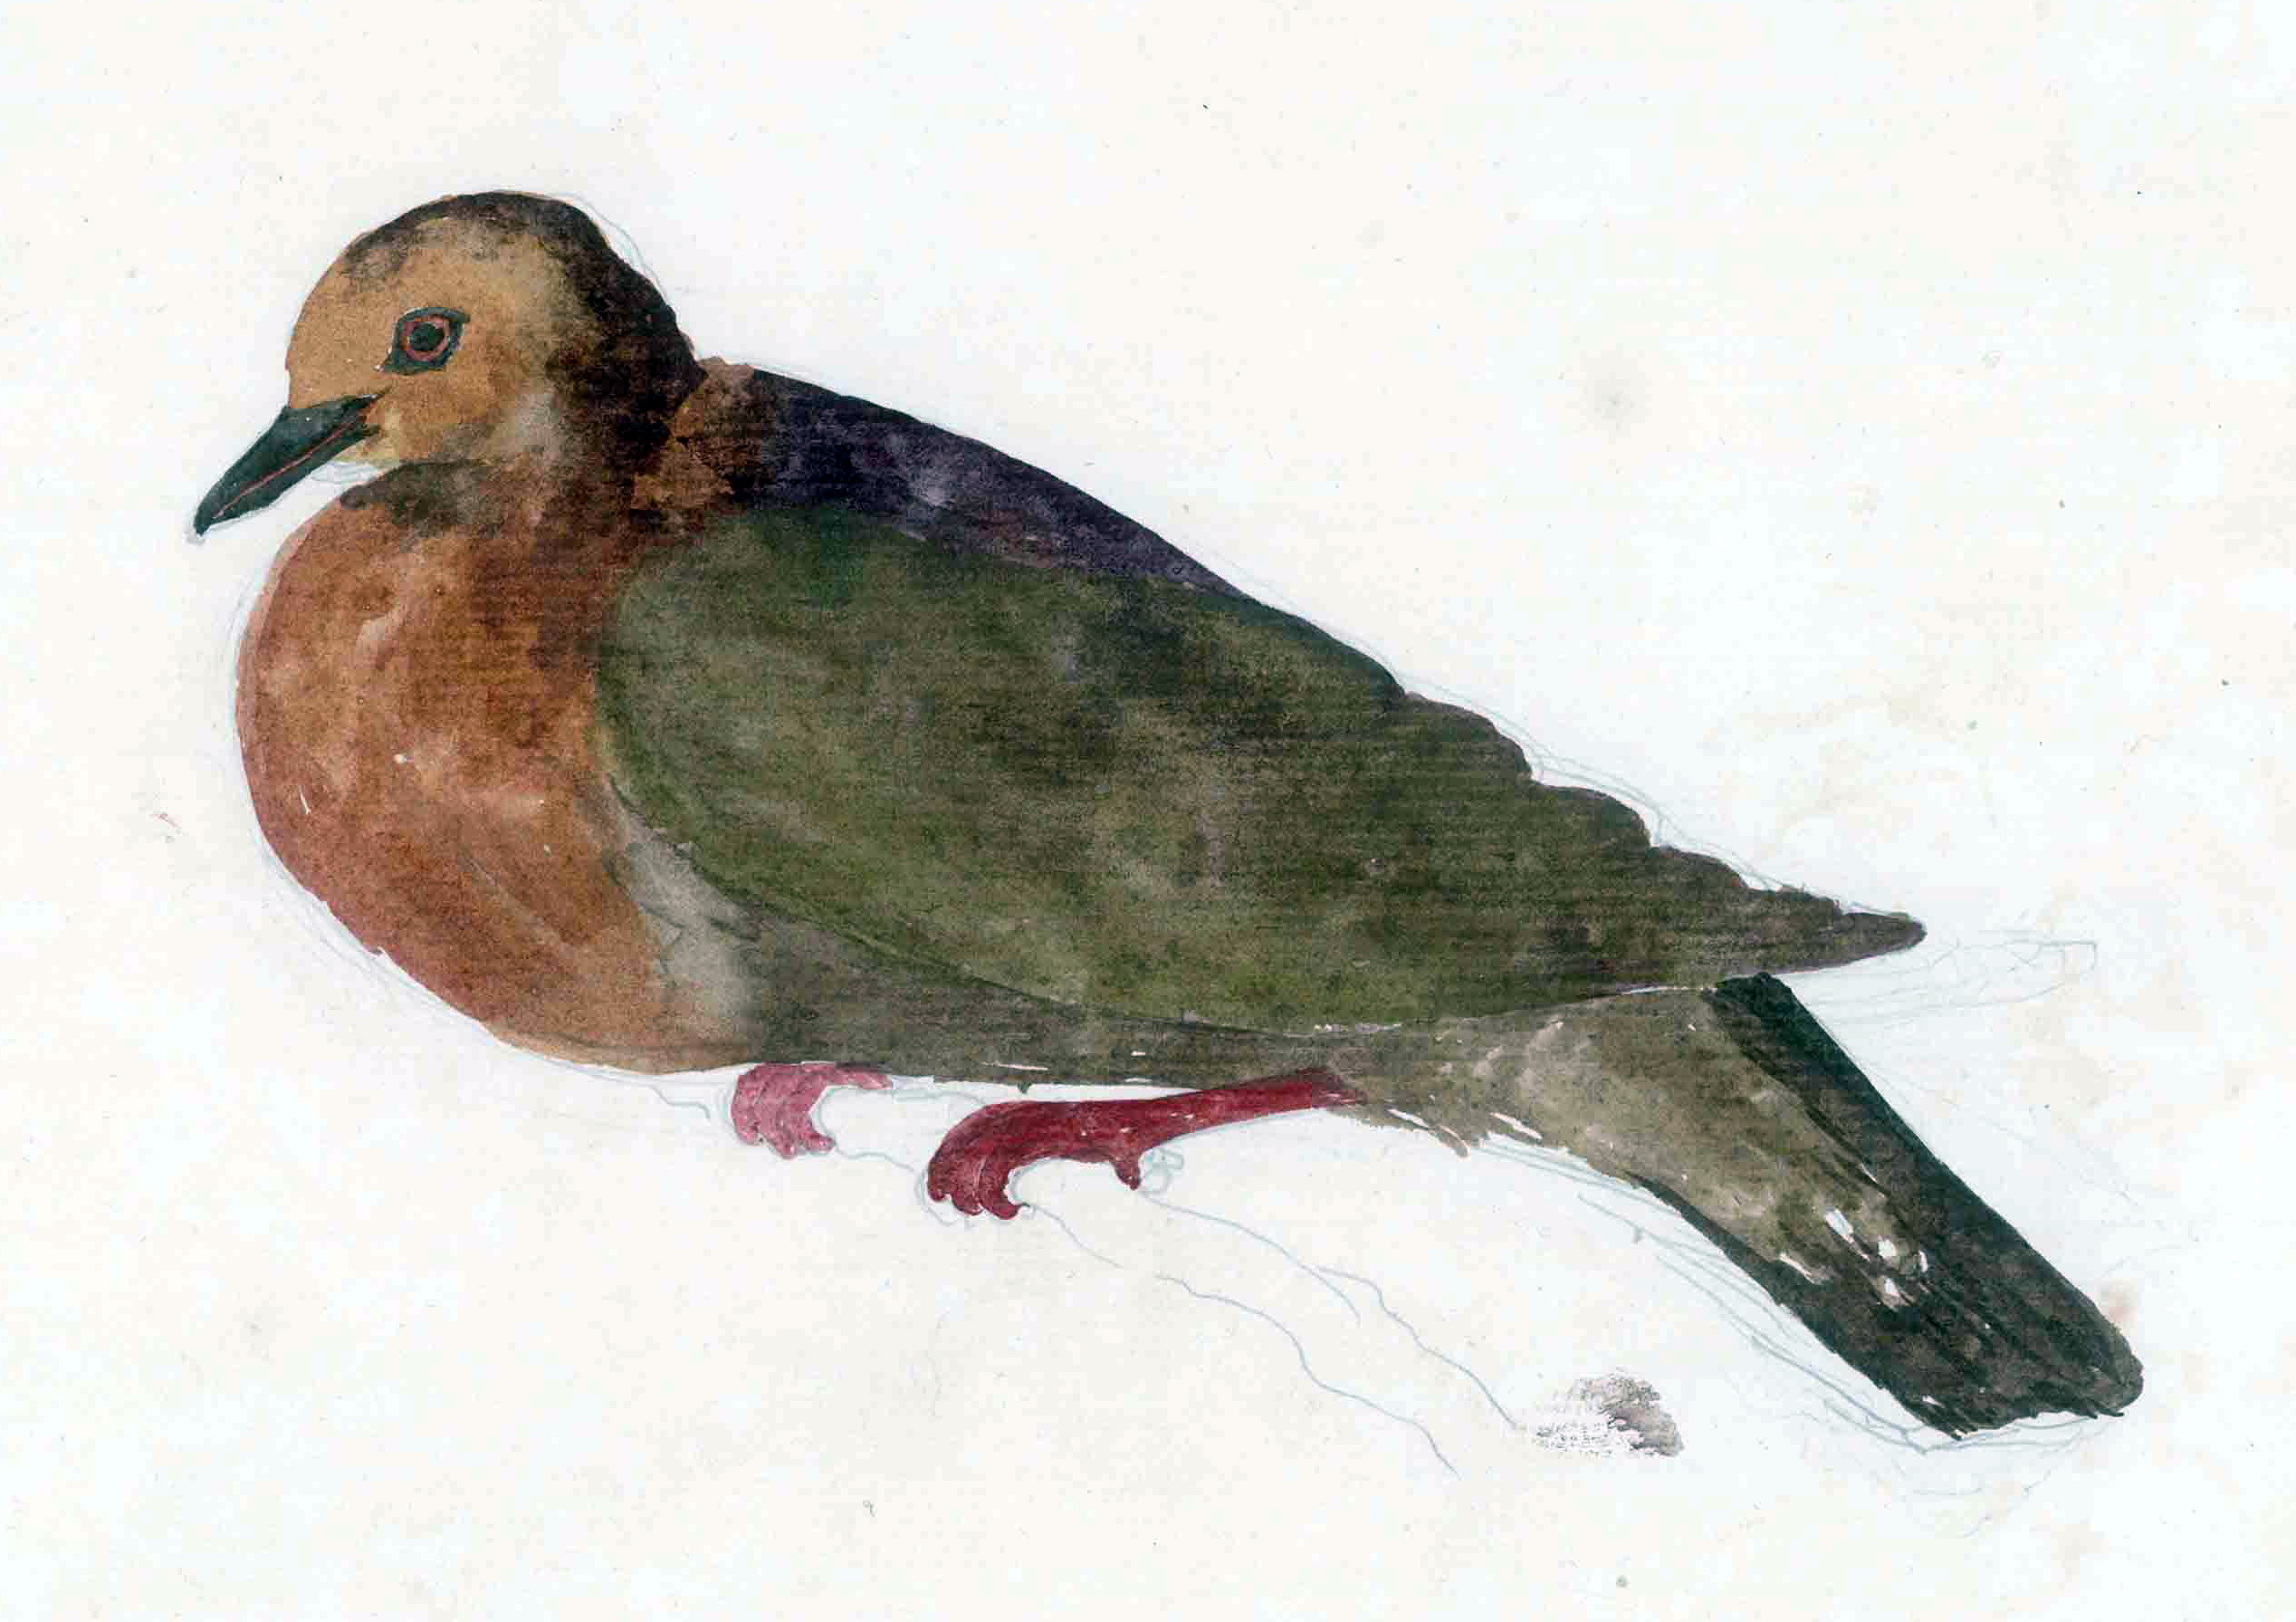 One of Forster's many illustrations of birds now extinct, the Tanna ground dove, also known as Forster's dove of Tanna TannaGroundDove.jpg